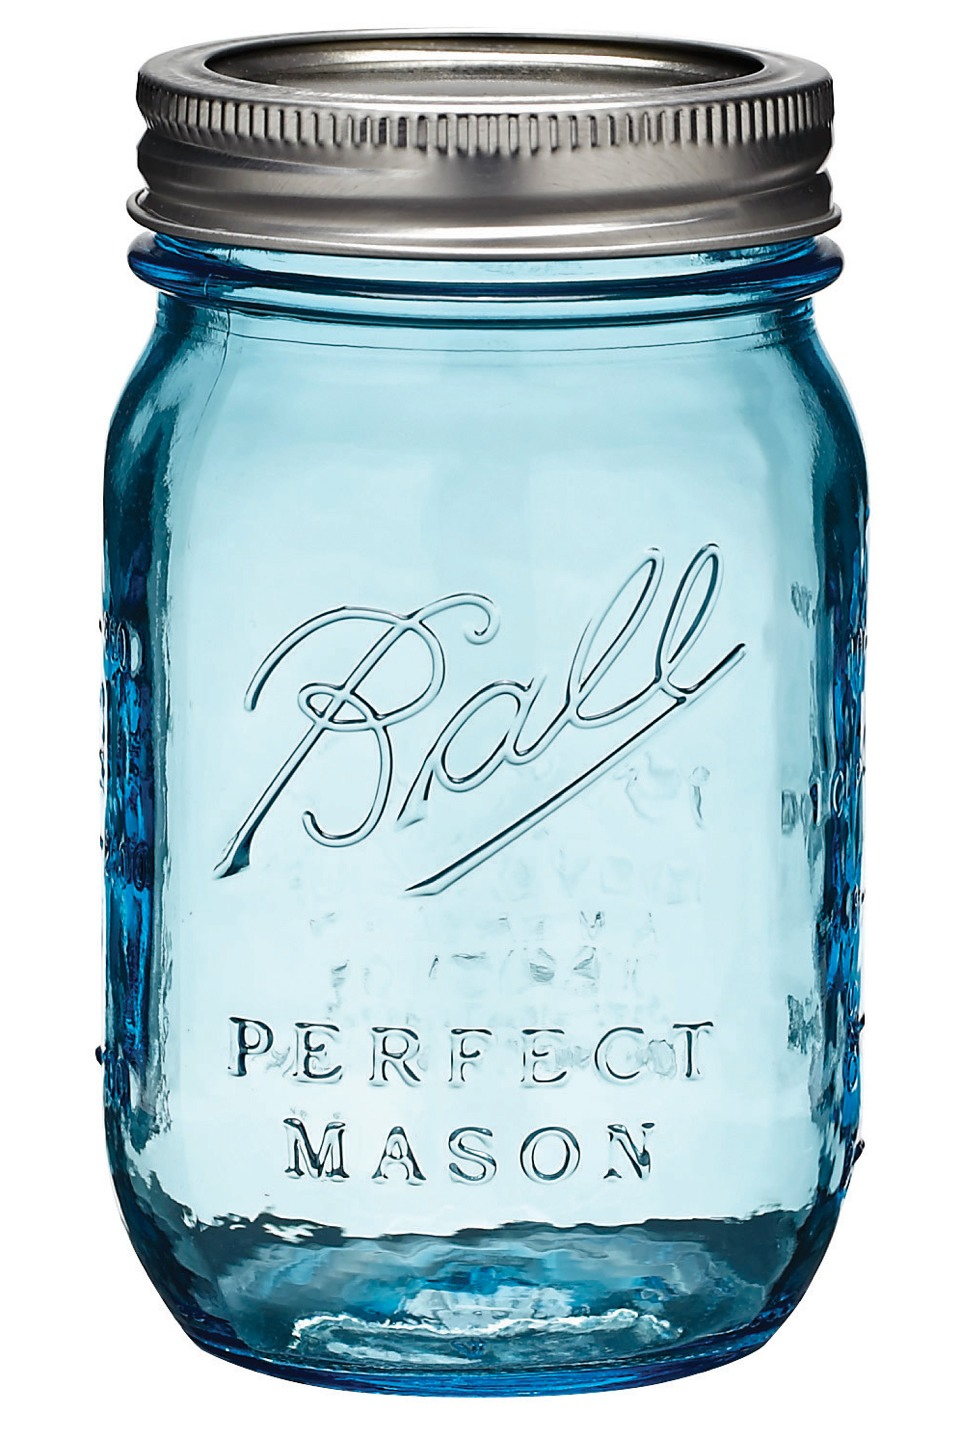 Pick any jar you like you can use an old jam jar, a jar from pickles any jar with a lid